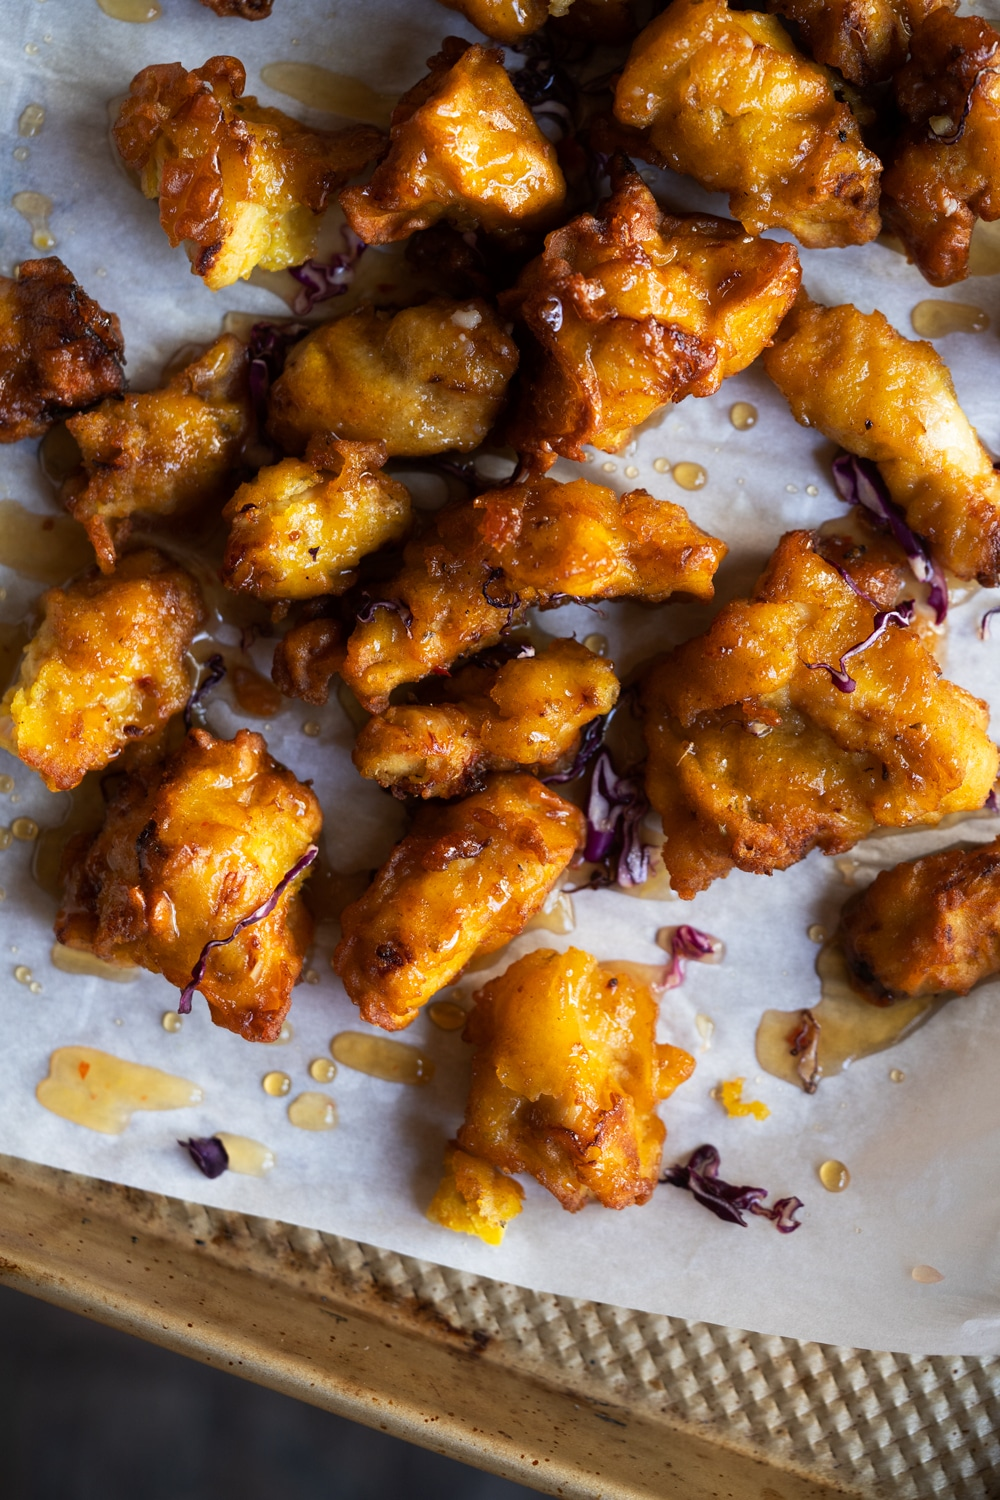 Mixing the fried battered chicken bites with the orange glaze on a baking tray